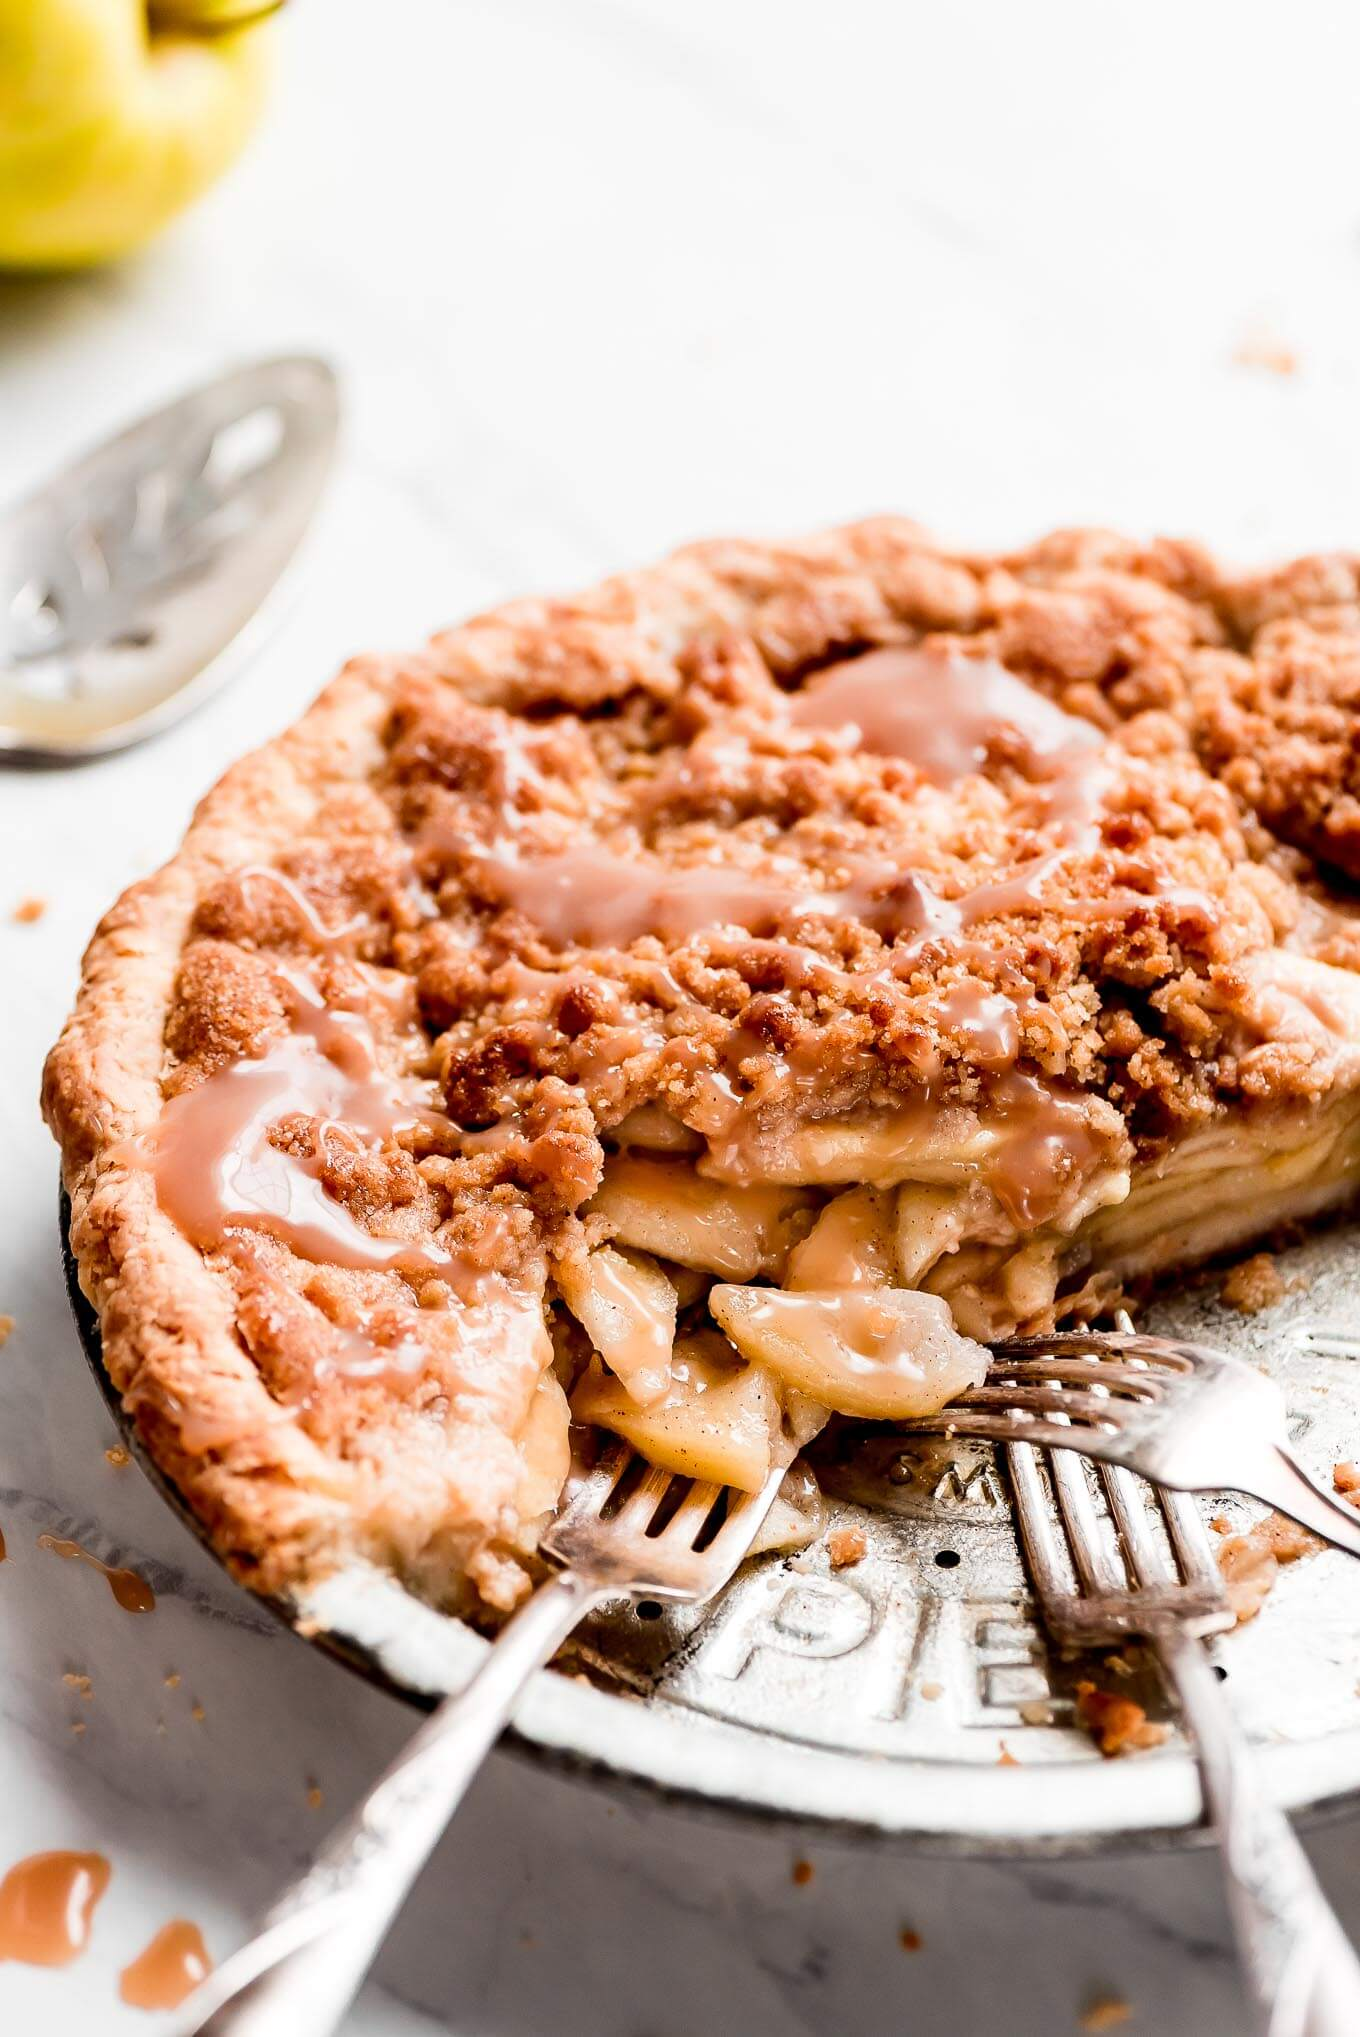 A close up shot of the inside of an Apple Crumble Pie in a pie dish with caramel sauce drizzled over it.